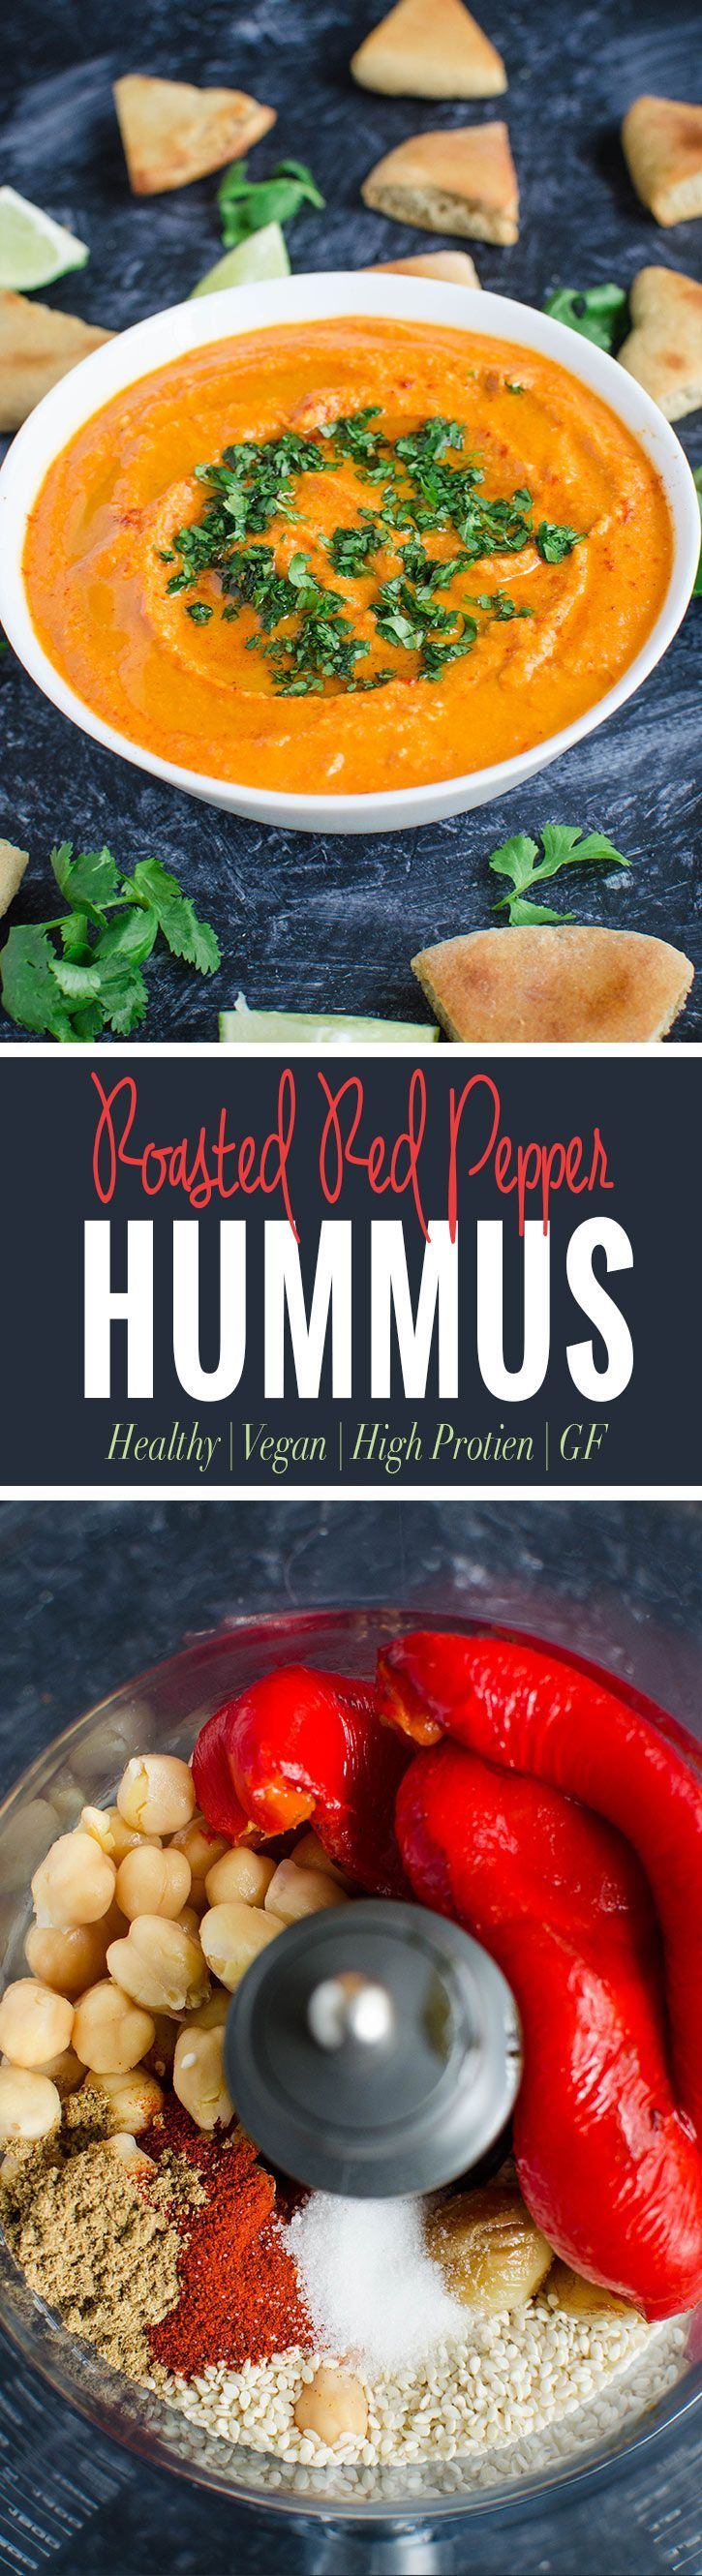 Roasted red pepper hummus - amazingly delicious, creamy and healthy hummus perfect for snacks with pita chips or as a side to any Mediterranean dish. via @watchwhatueat